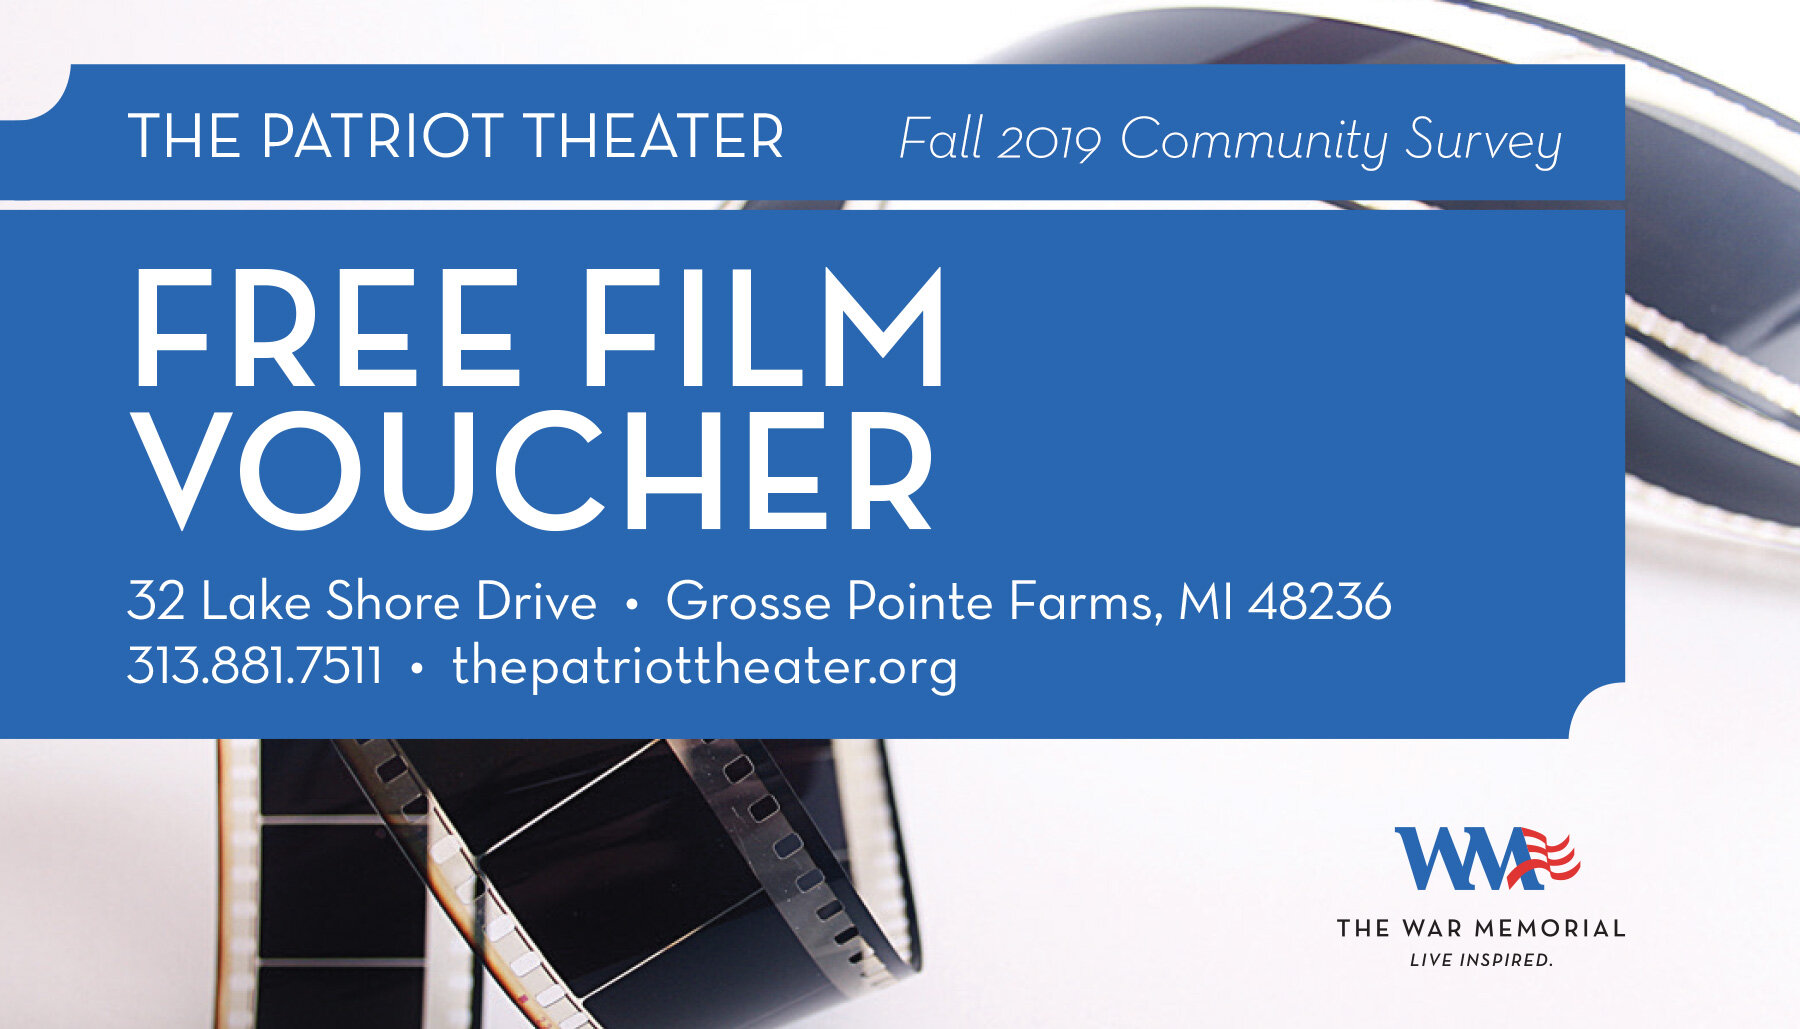 This voucher is valid for  TWO TICKETS  to any  STANDARD MOVIE SCREENING  at The Patriot Theater. Live performances, dinners, and special events are excluded from this promotion. Voucher must be redeemed in person at The Patriot Theater; online reservations are not accepted. Limit one voucher per person per promotional period. No cash value. Expires December 31, 2019. Contact Bruce Ferguson with questions at 313.332.4004 or  bferguson@warmemorial.org .